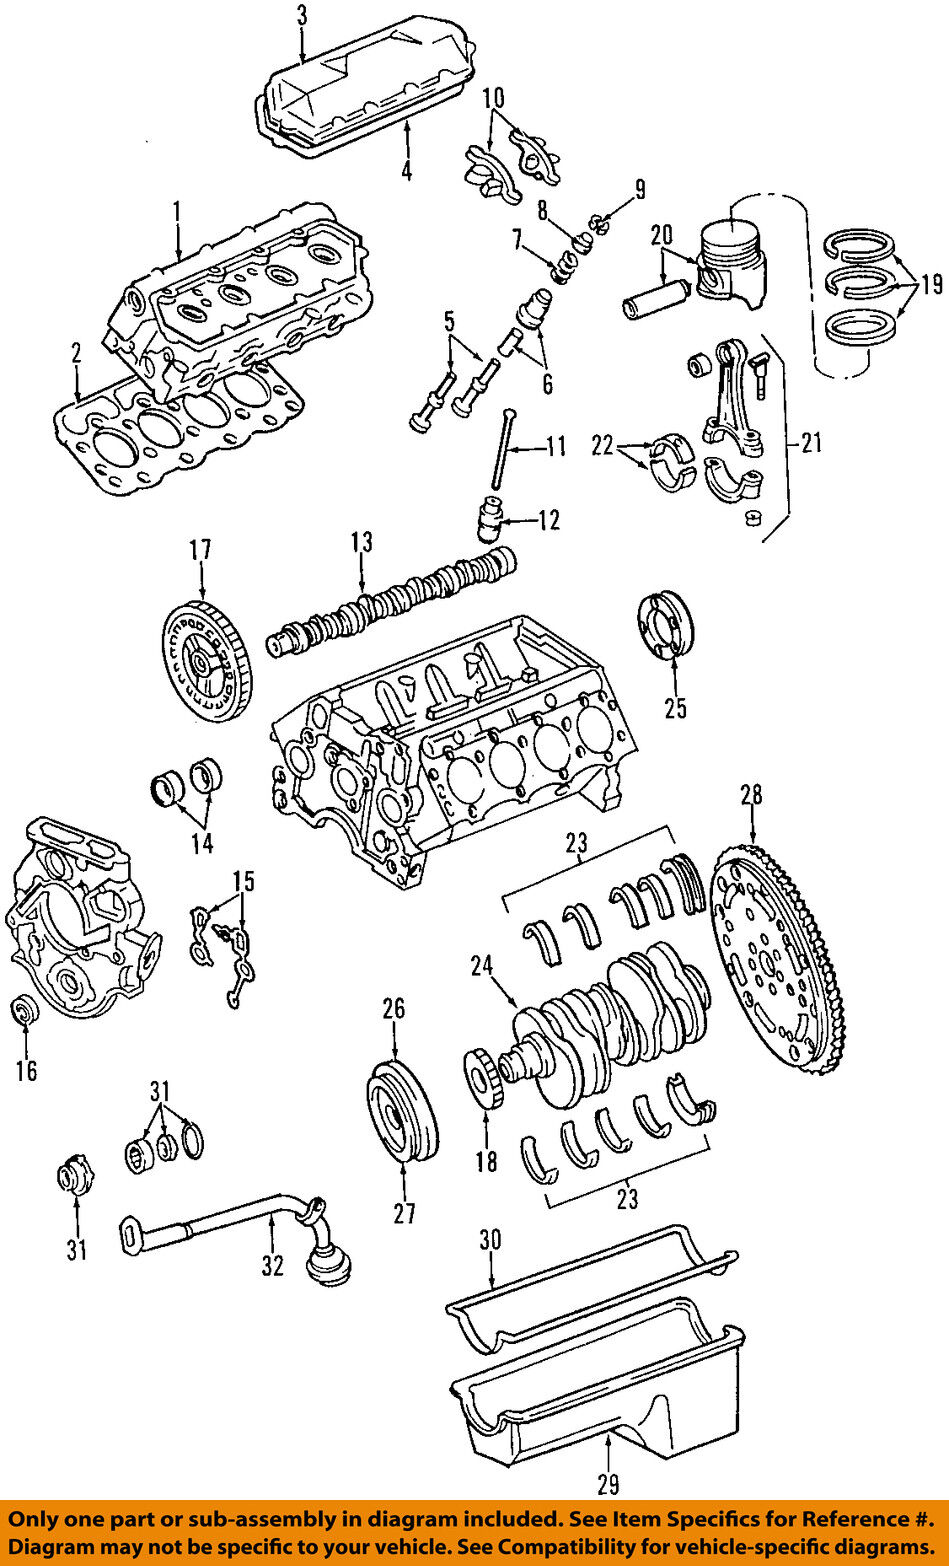 Ford Oem 98 02 E 350 Econoline Club Wagon Engine Oil Pump Yc3z6619ba Diagram 1 Of 1only Available